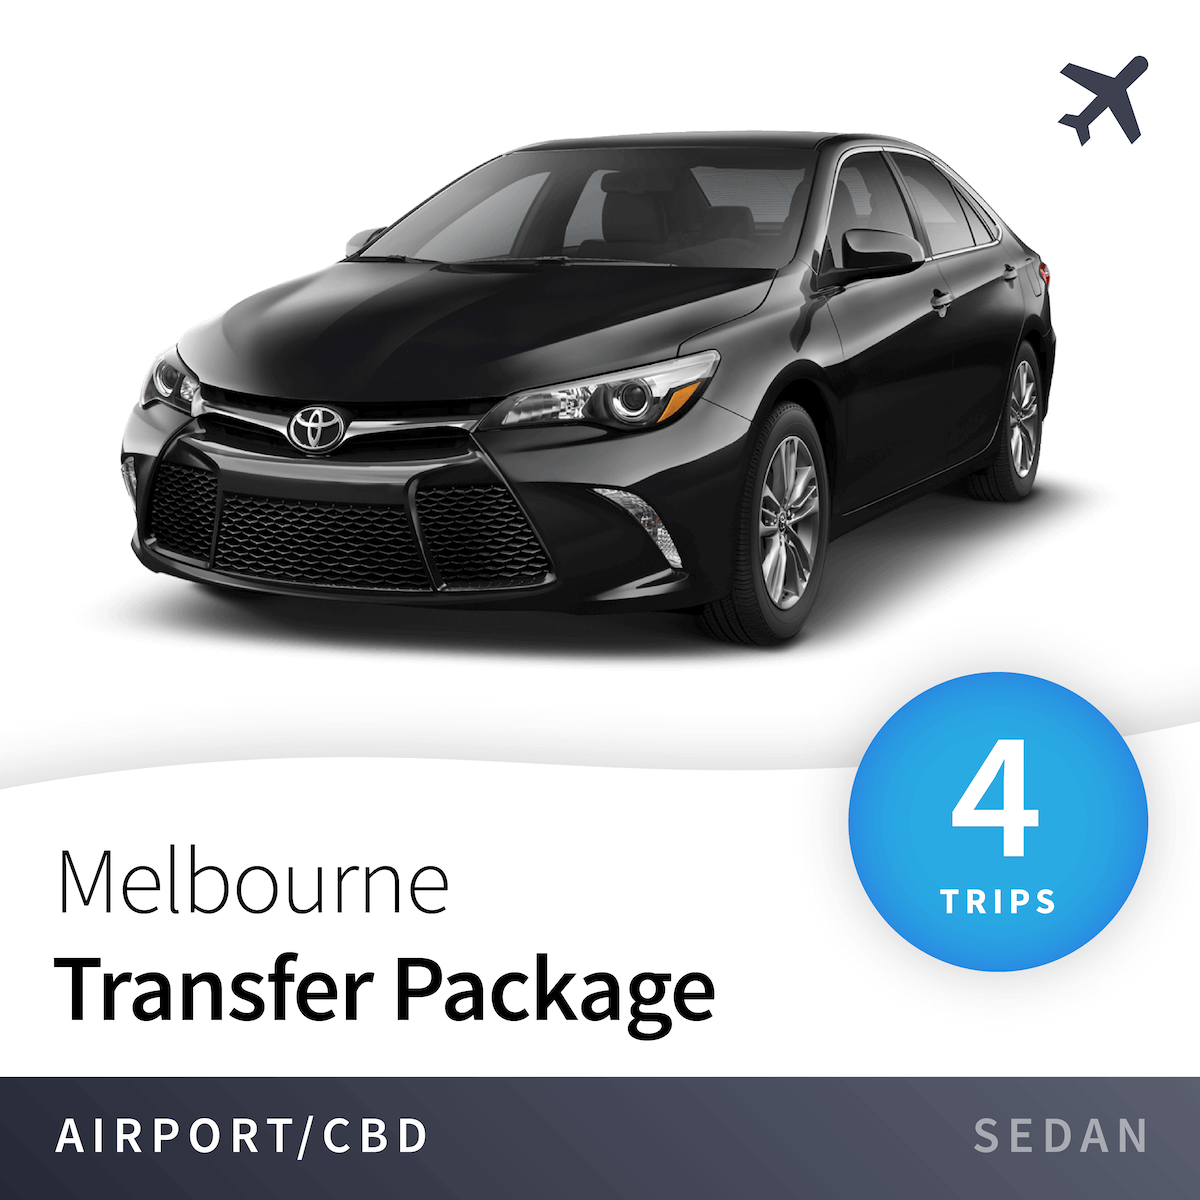 Melbourne Airport Transfer Package - Sedan (4 Trips) 7